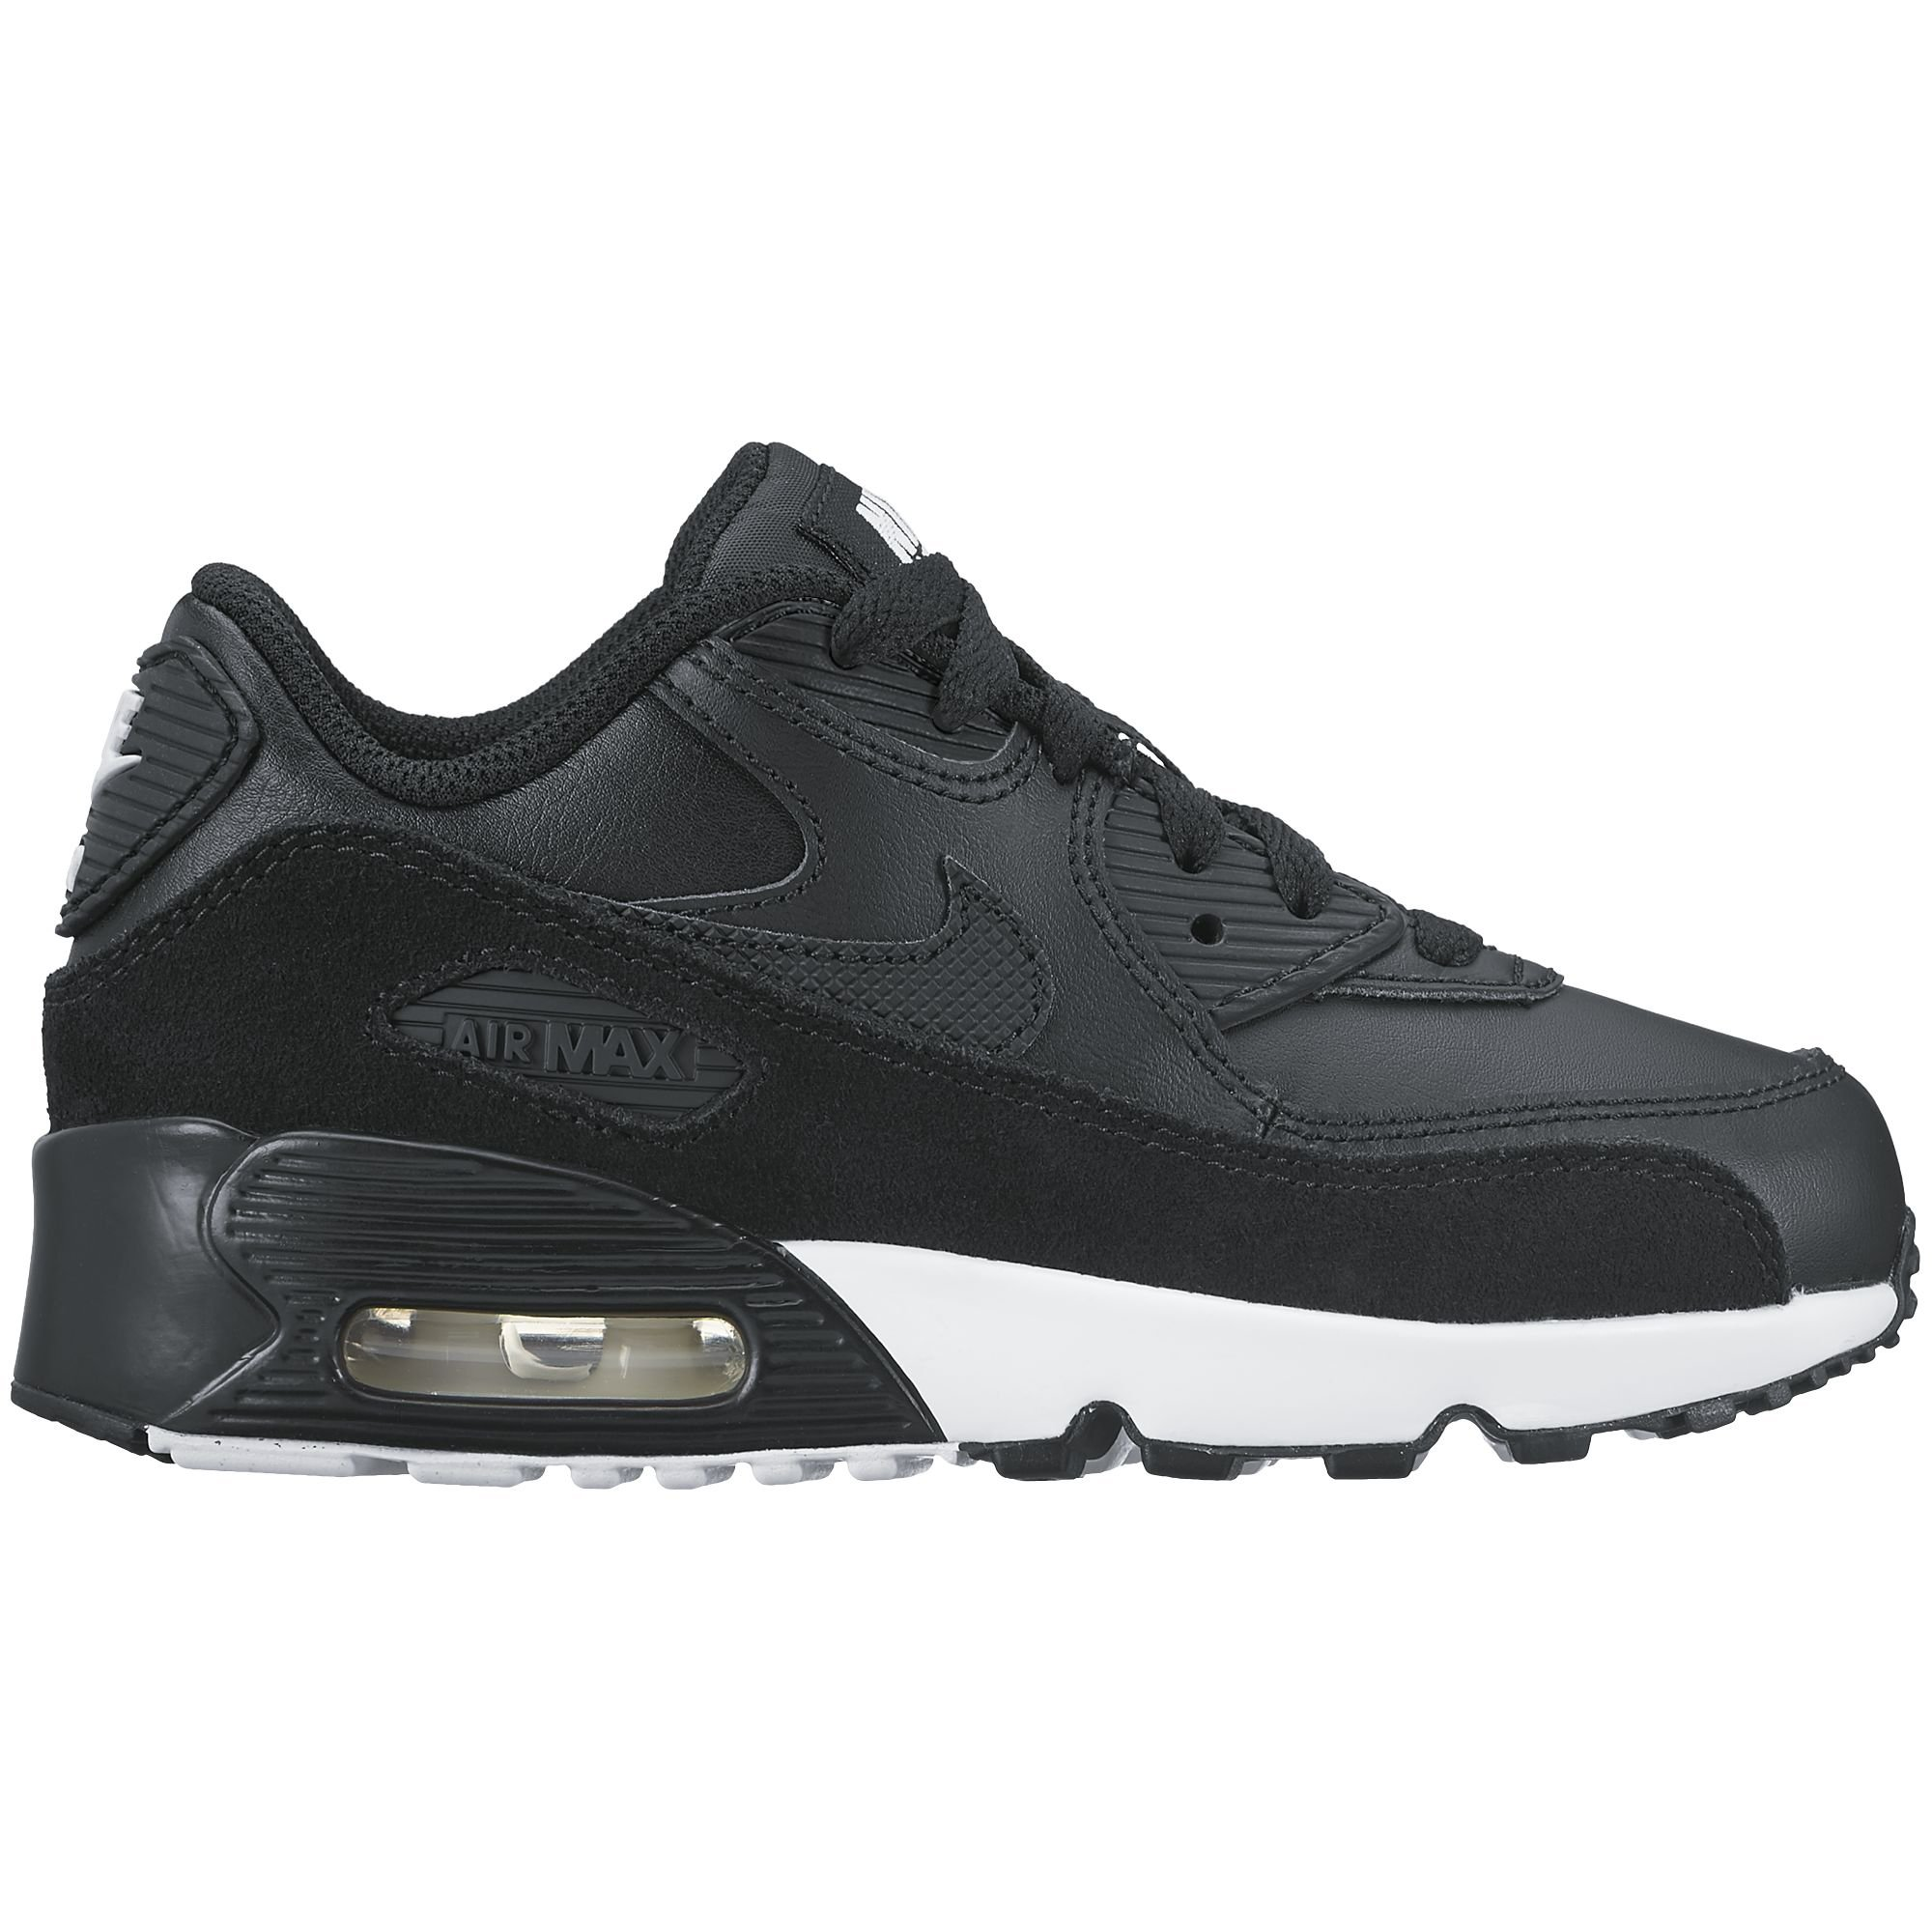 NIKE Air Max 90 LTR Little Kid's Shoes Black/Black/White 833414-014 (10.5 M US) by NIKE